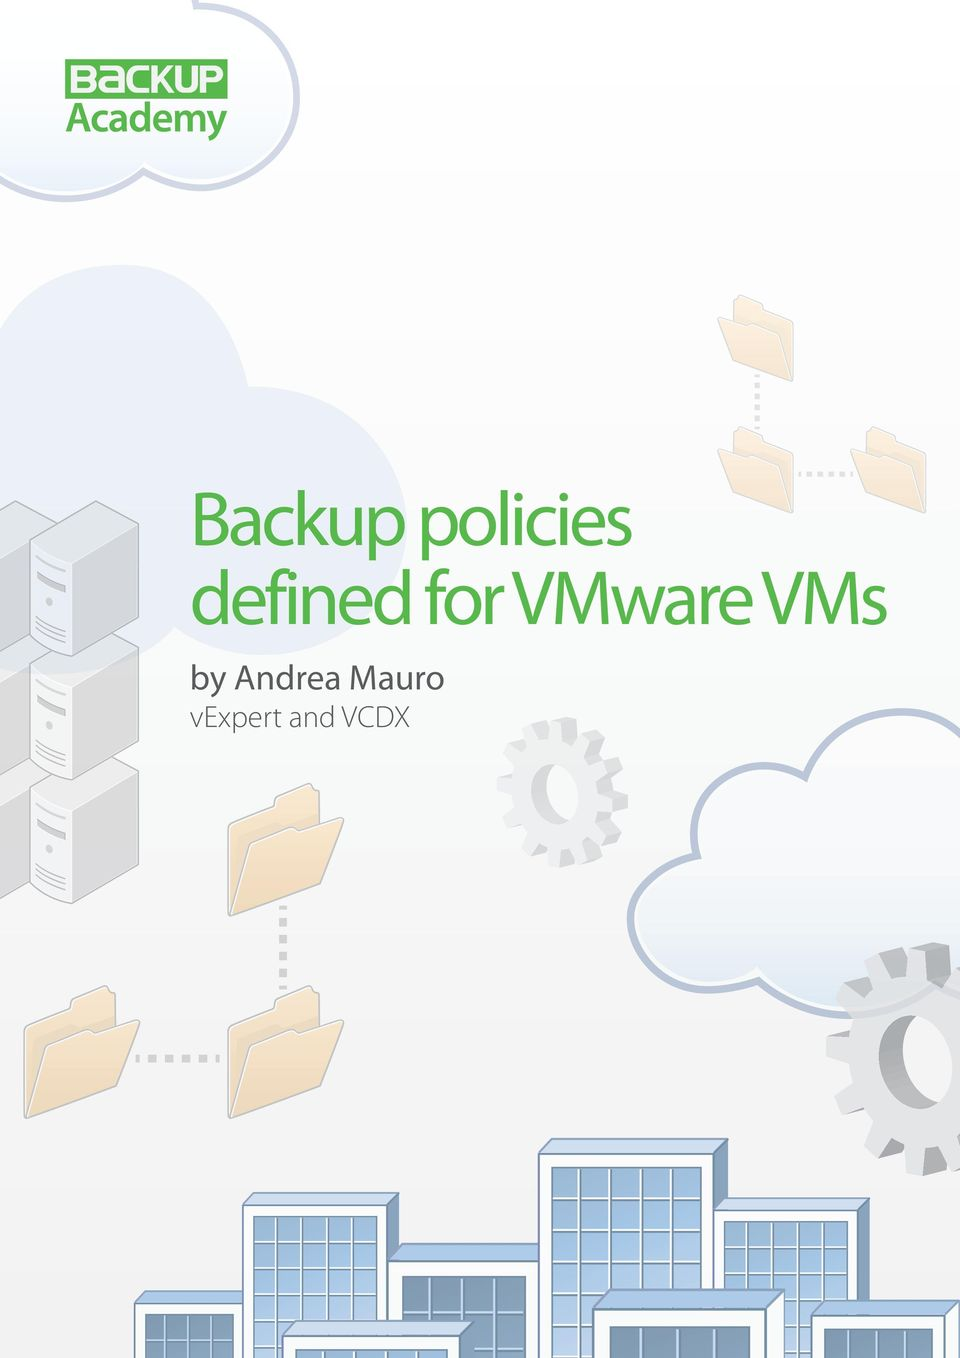 VMware VMs by